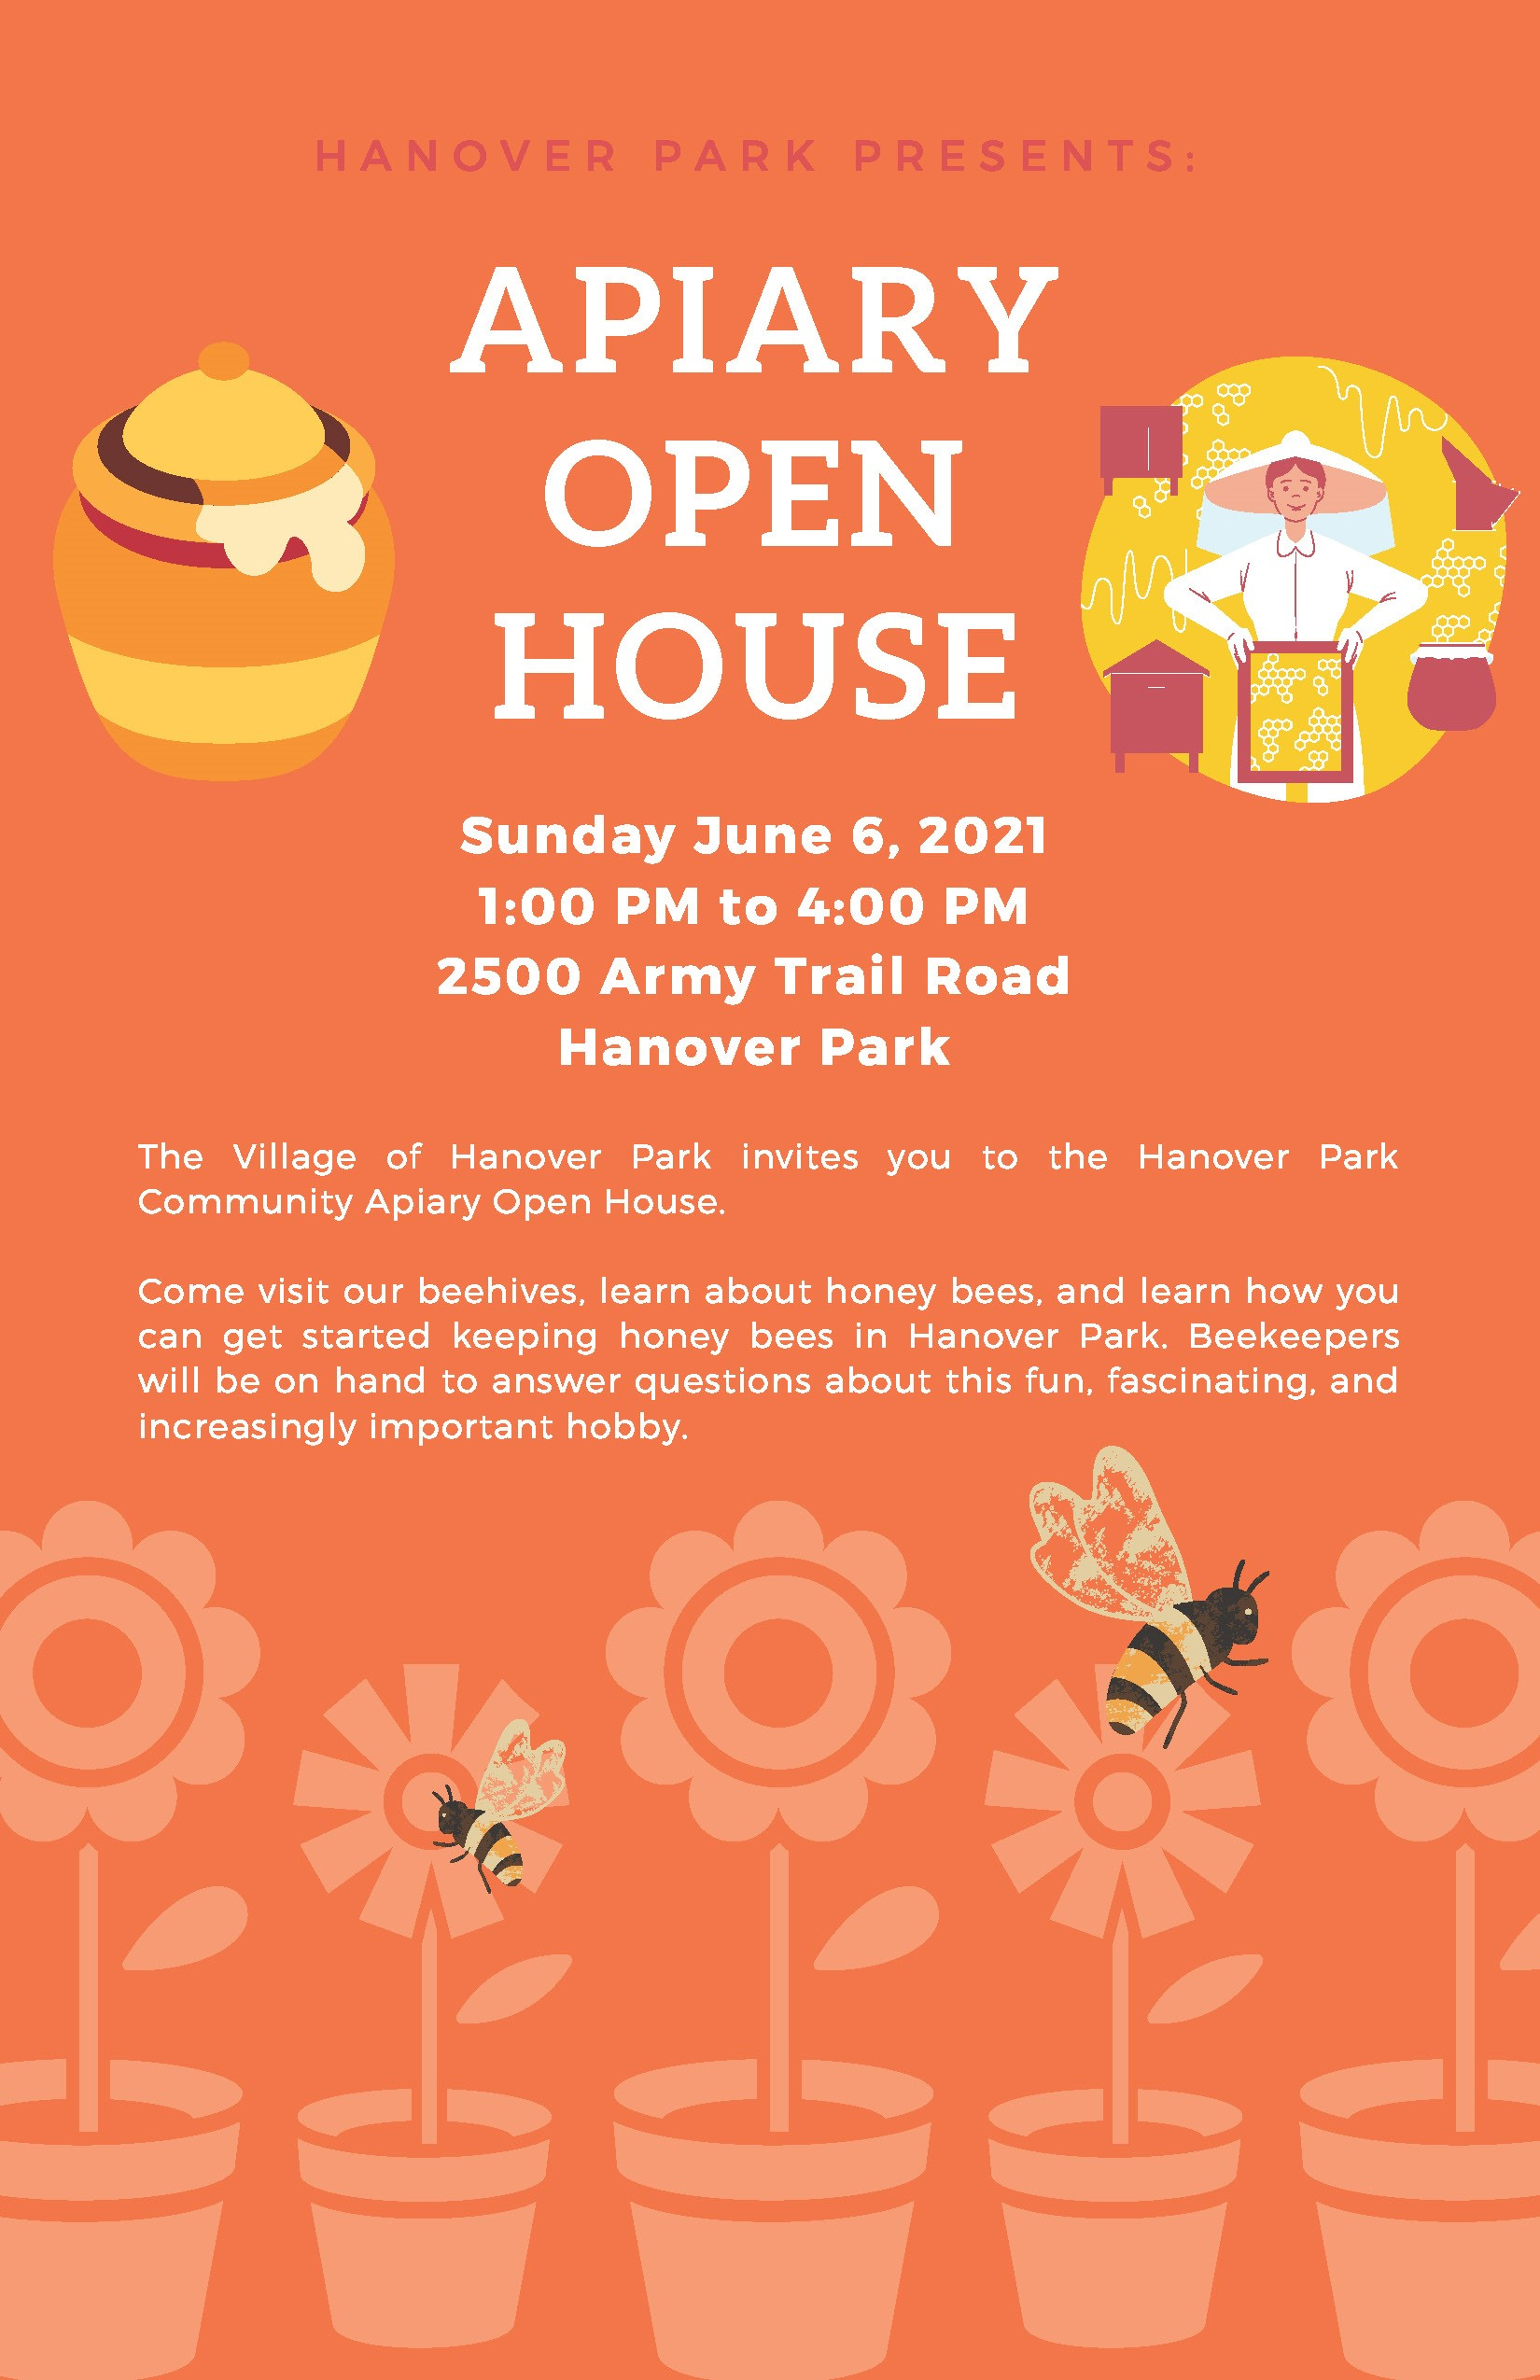 APIARY OPEN HOUSE